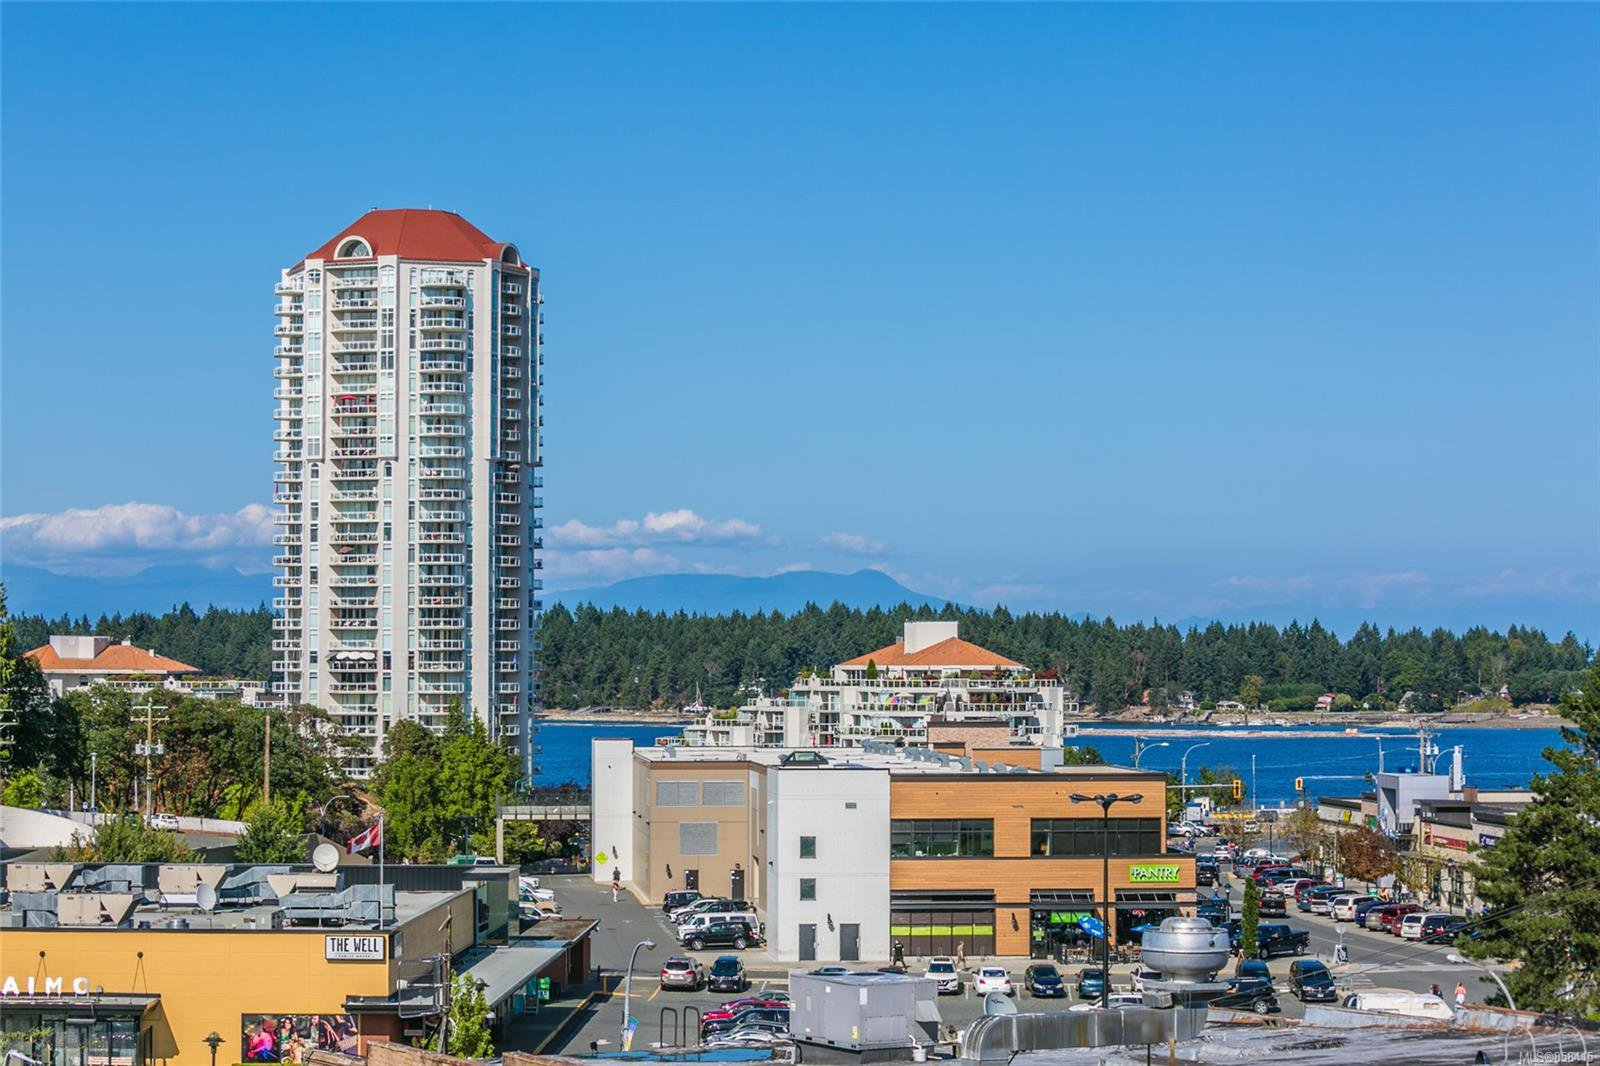 Main Photo: 101 30 Cavan St in : Na Old City Condo for sale (Nanaimo)  : MLS®# 858415